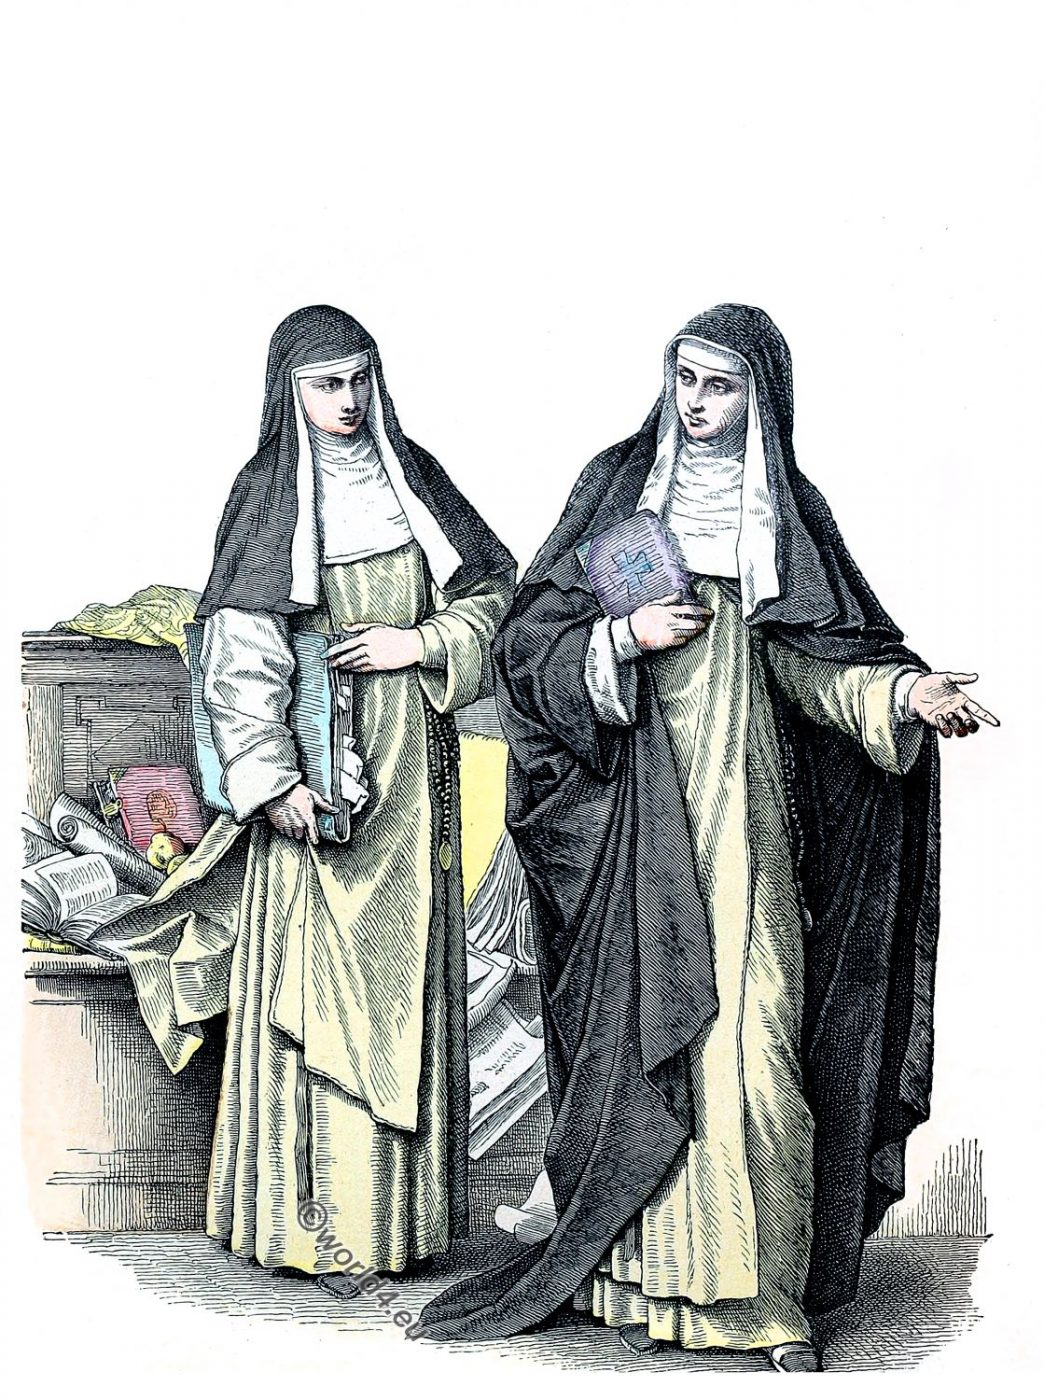 Nuns, Habit, costume, Dominicans, Catholic Order,